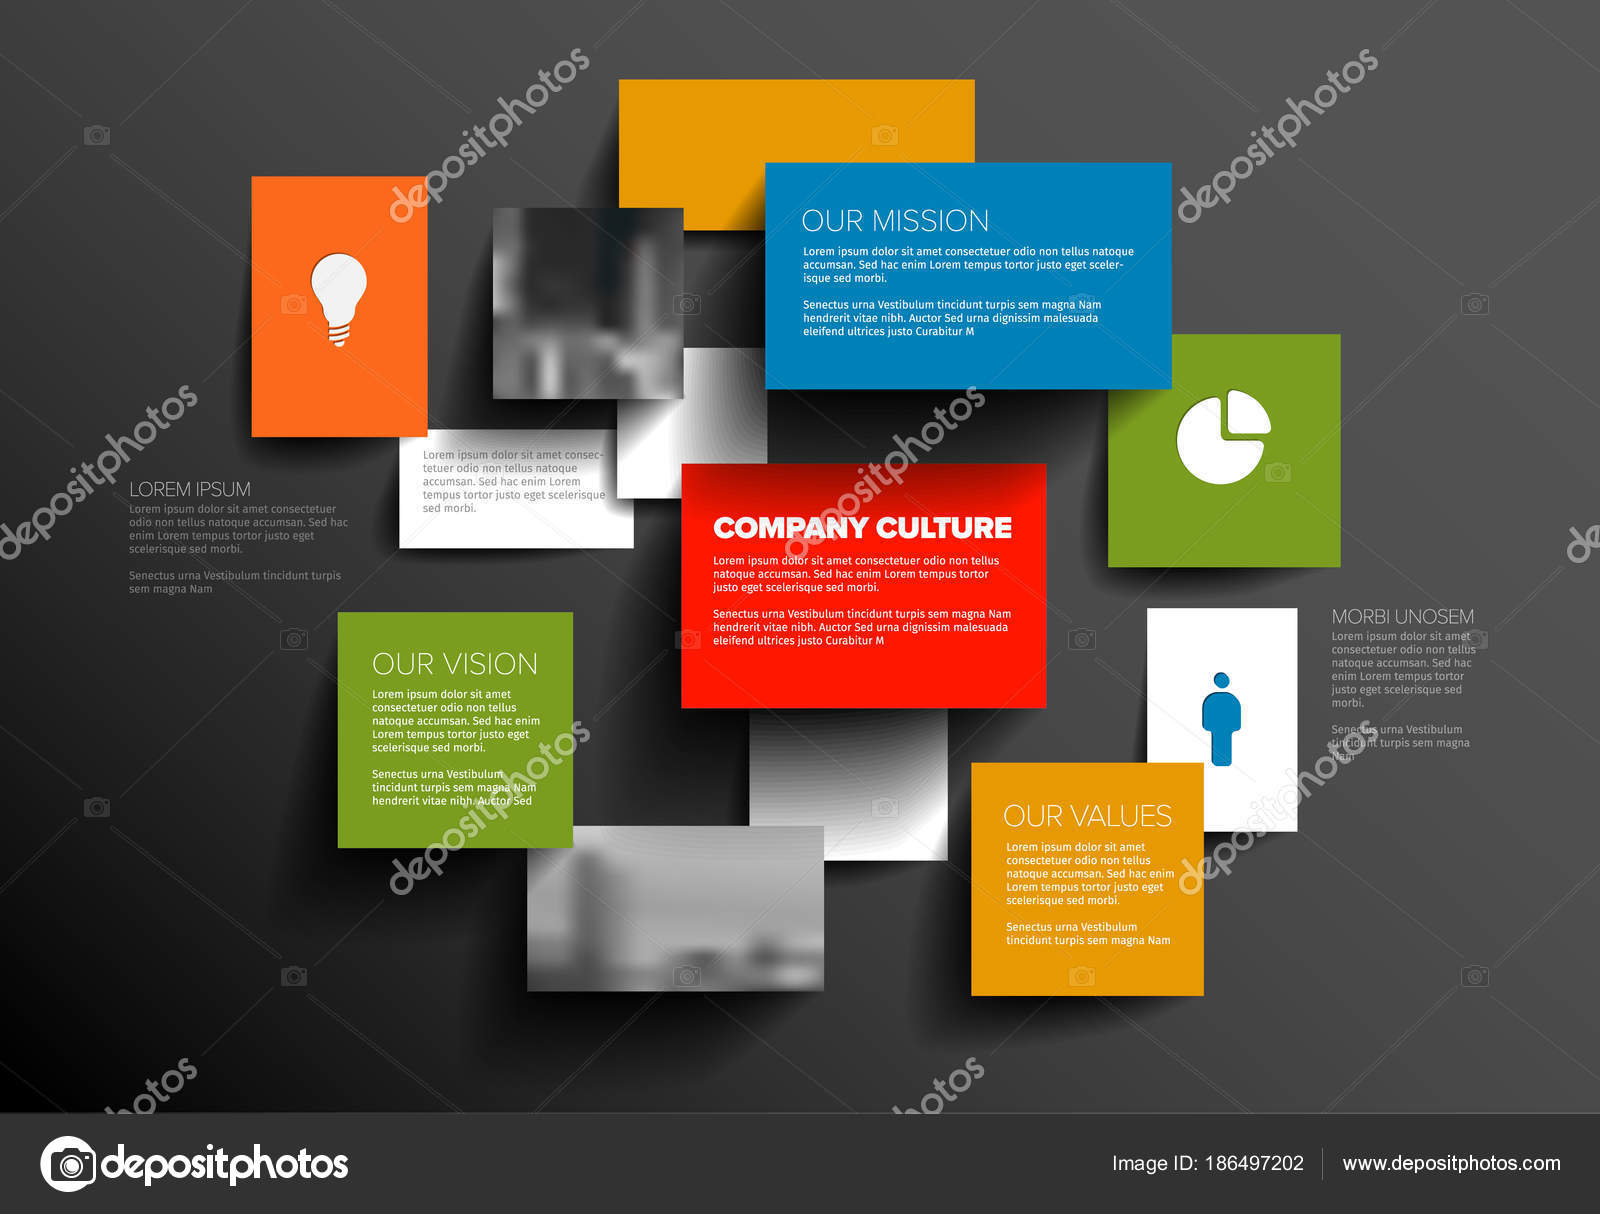 Vector mission vision values diagram schema template sample text vector mission vision values diagram schema template sample text photos stock vector ccuart Image collections